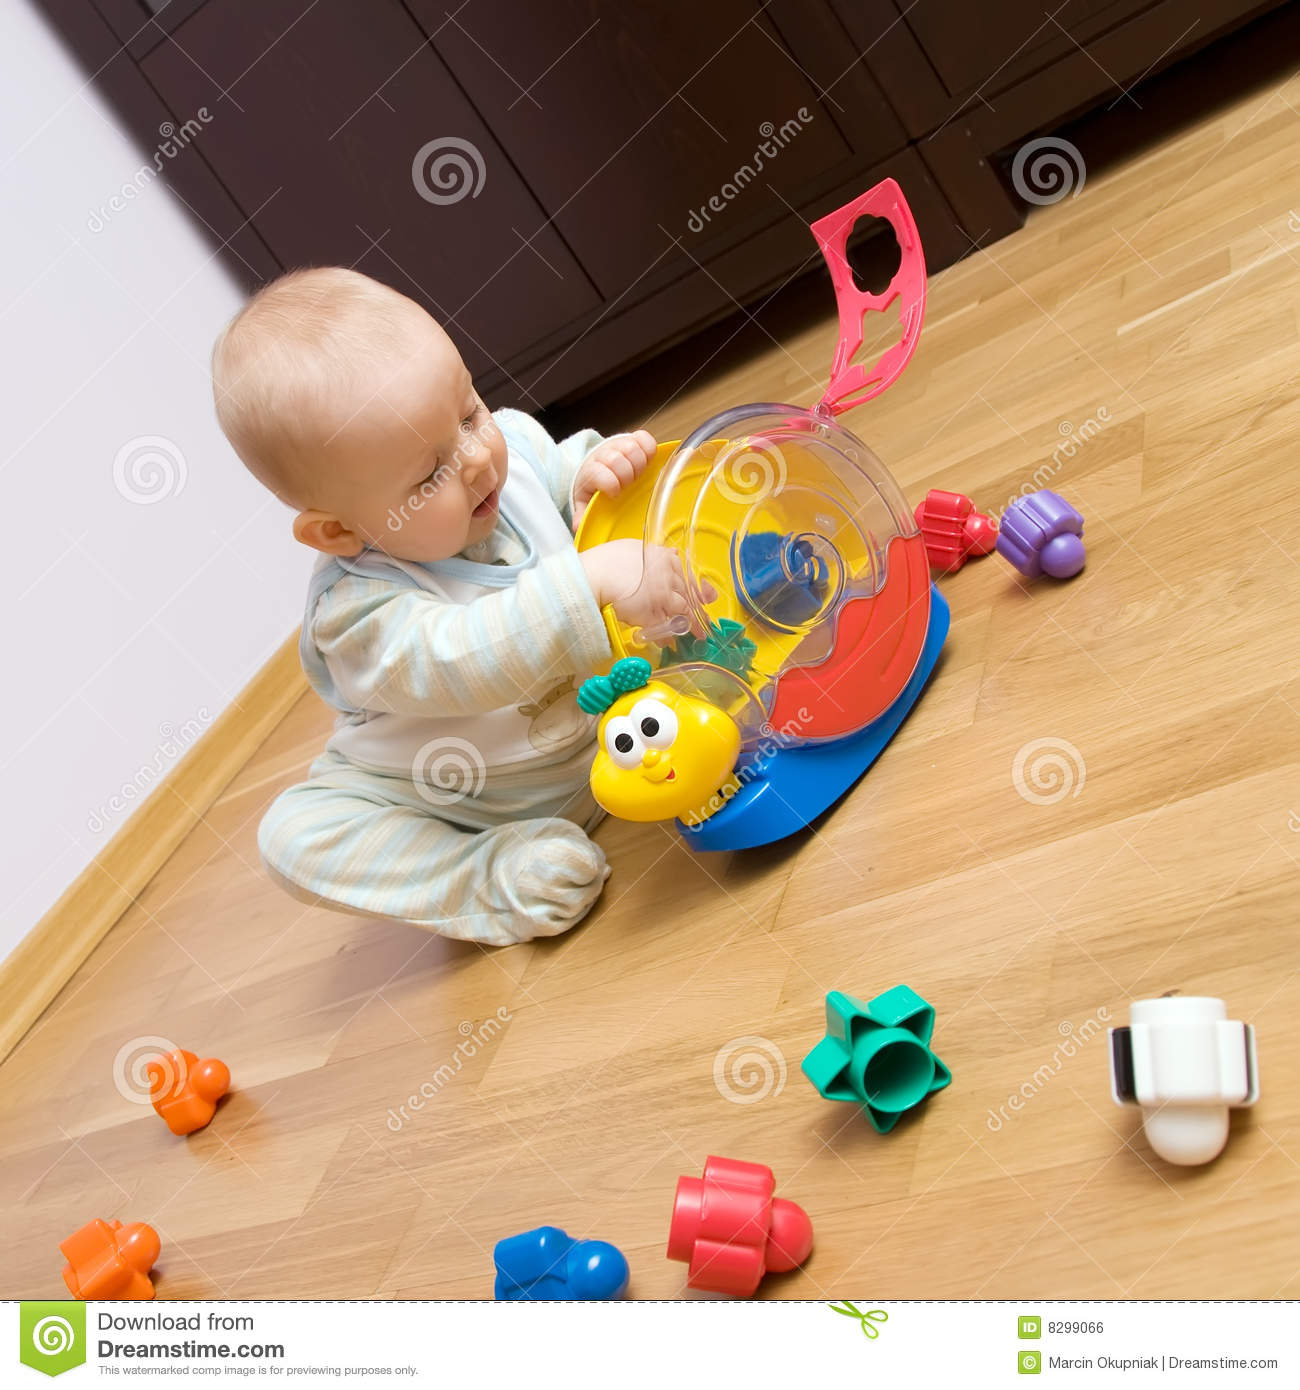 Baby playing with plastic toy